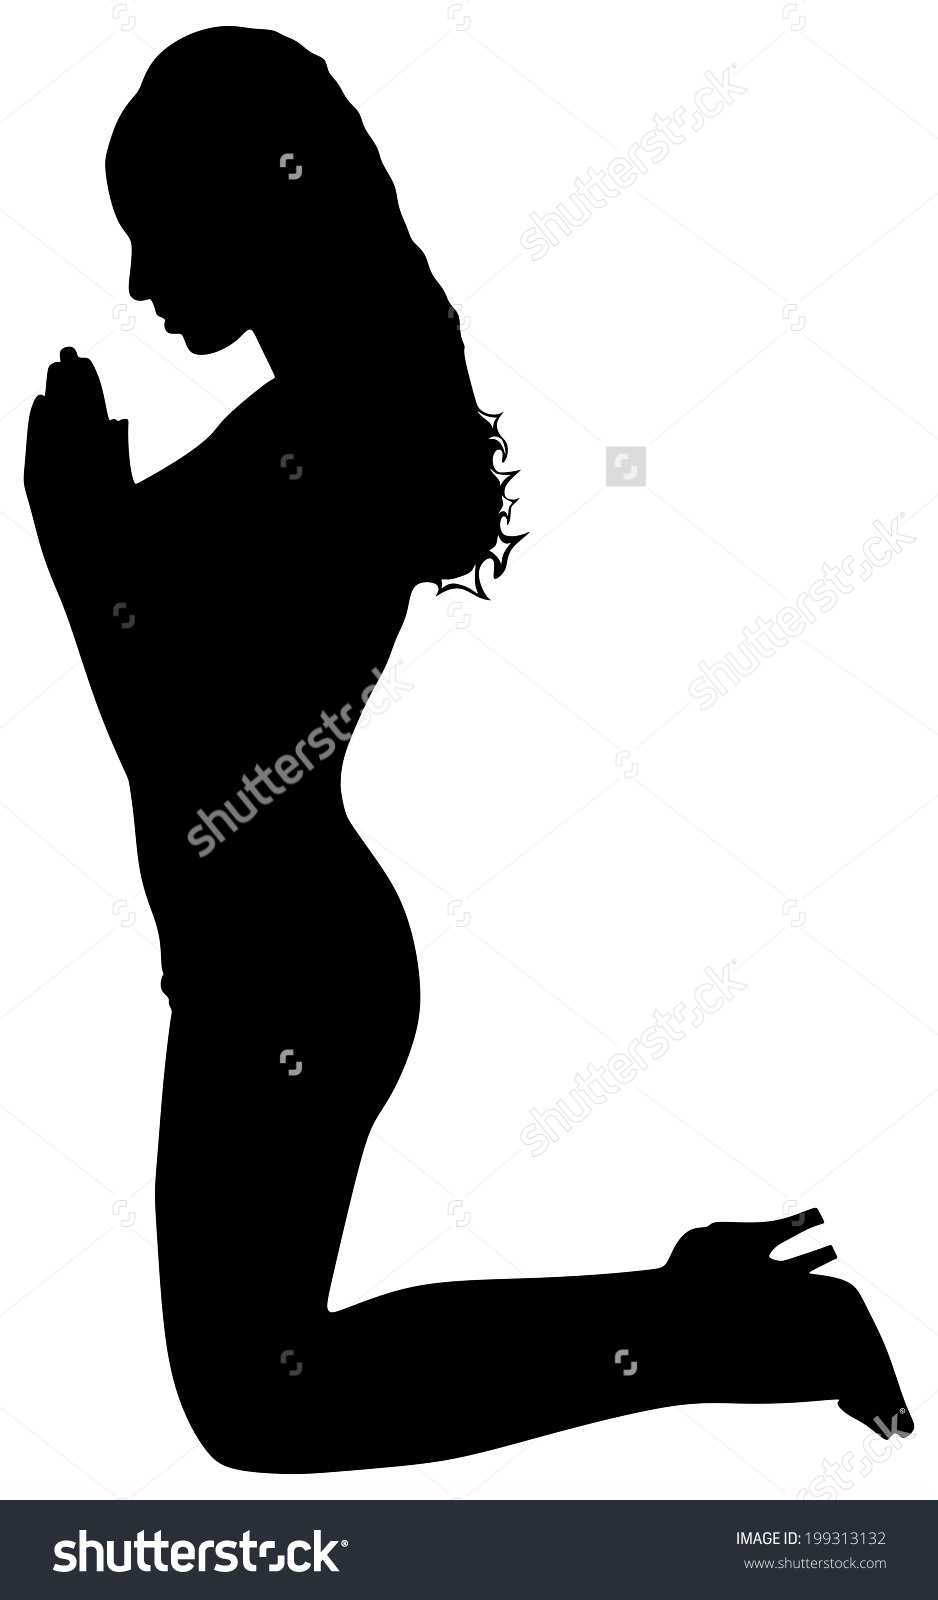 clipart praying woman - Clipground